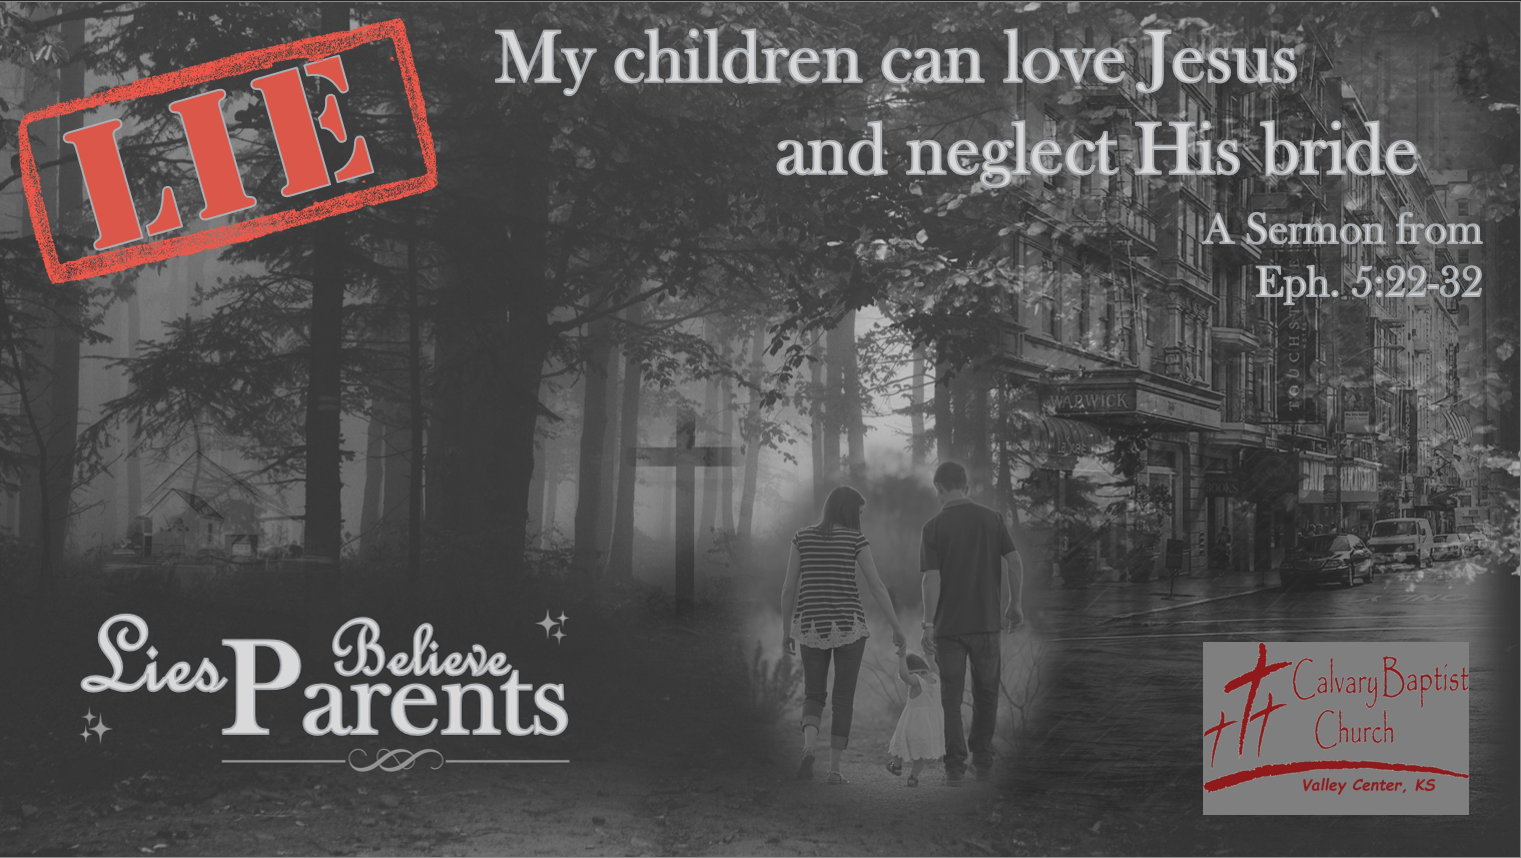 My children can love Jesus and neglect His bride